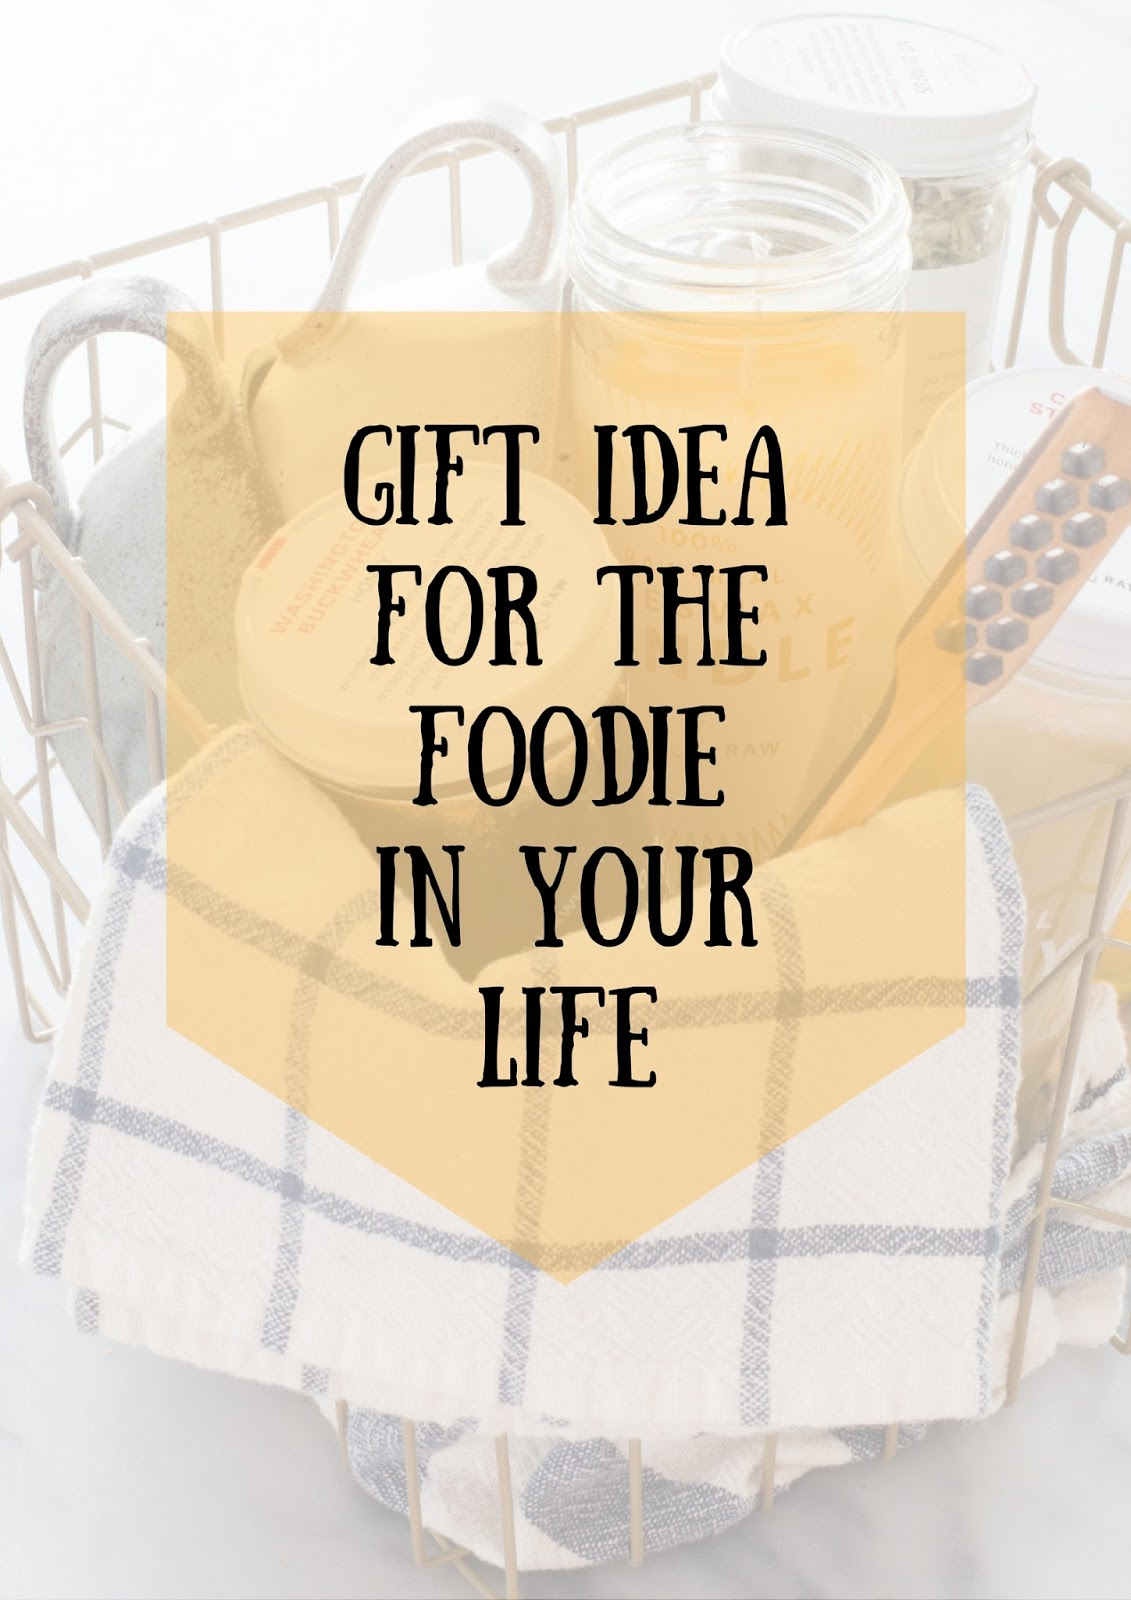 Gift Ideas for the Foodie in Your Life